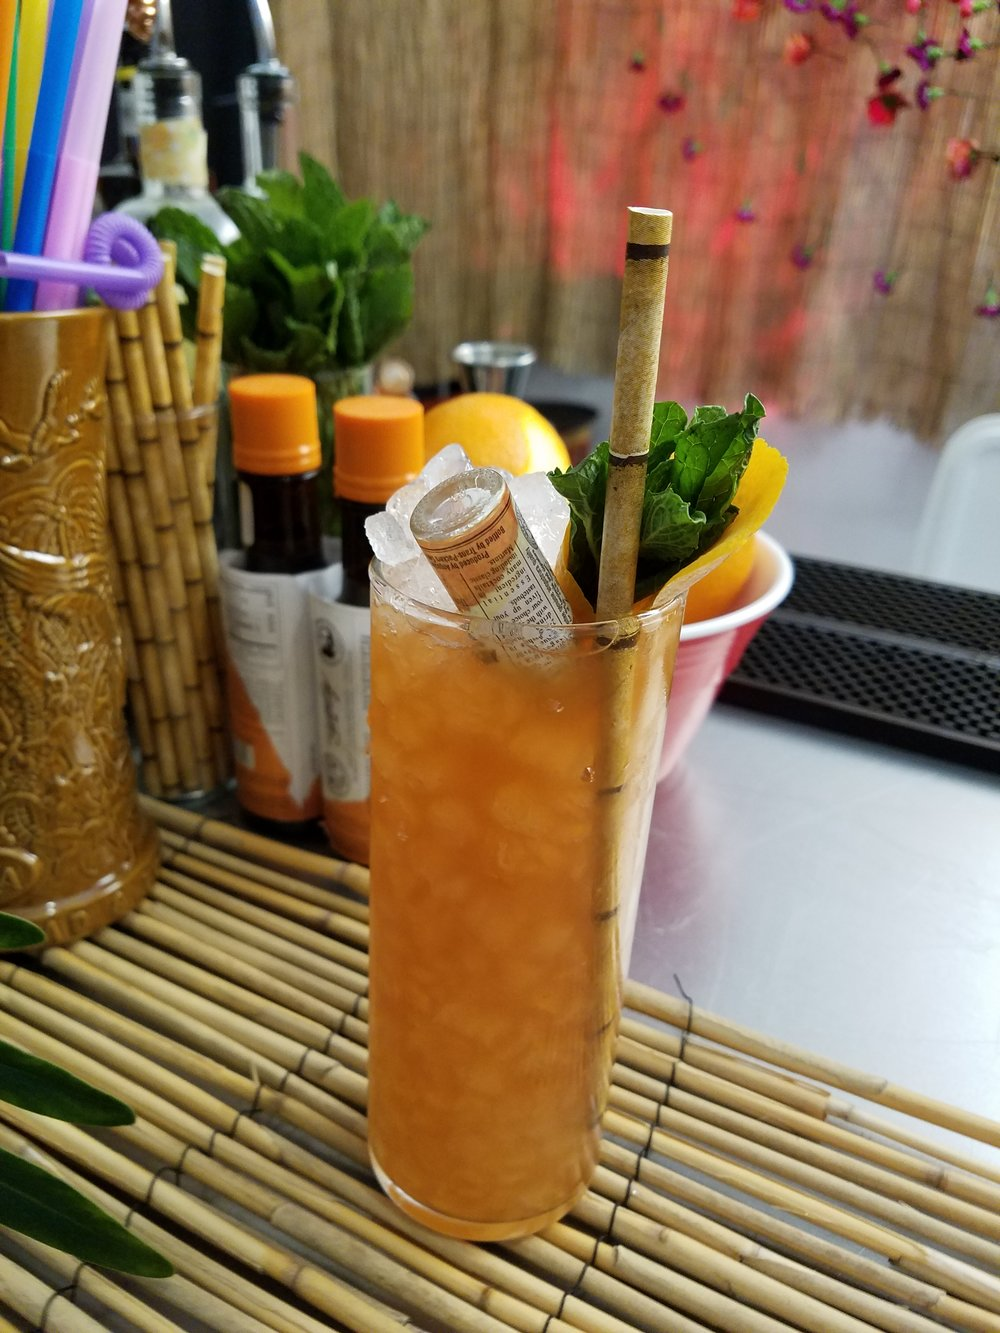 Another beauty from State Lines. The Smugtown Swizzle, made with Angostura white oak rum, Amaro di Angostura, spiced coffee demerara, lime, and a whole mini-bottle of orange bitters.